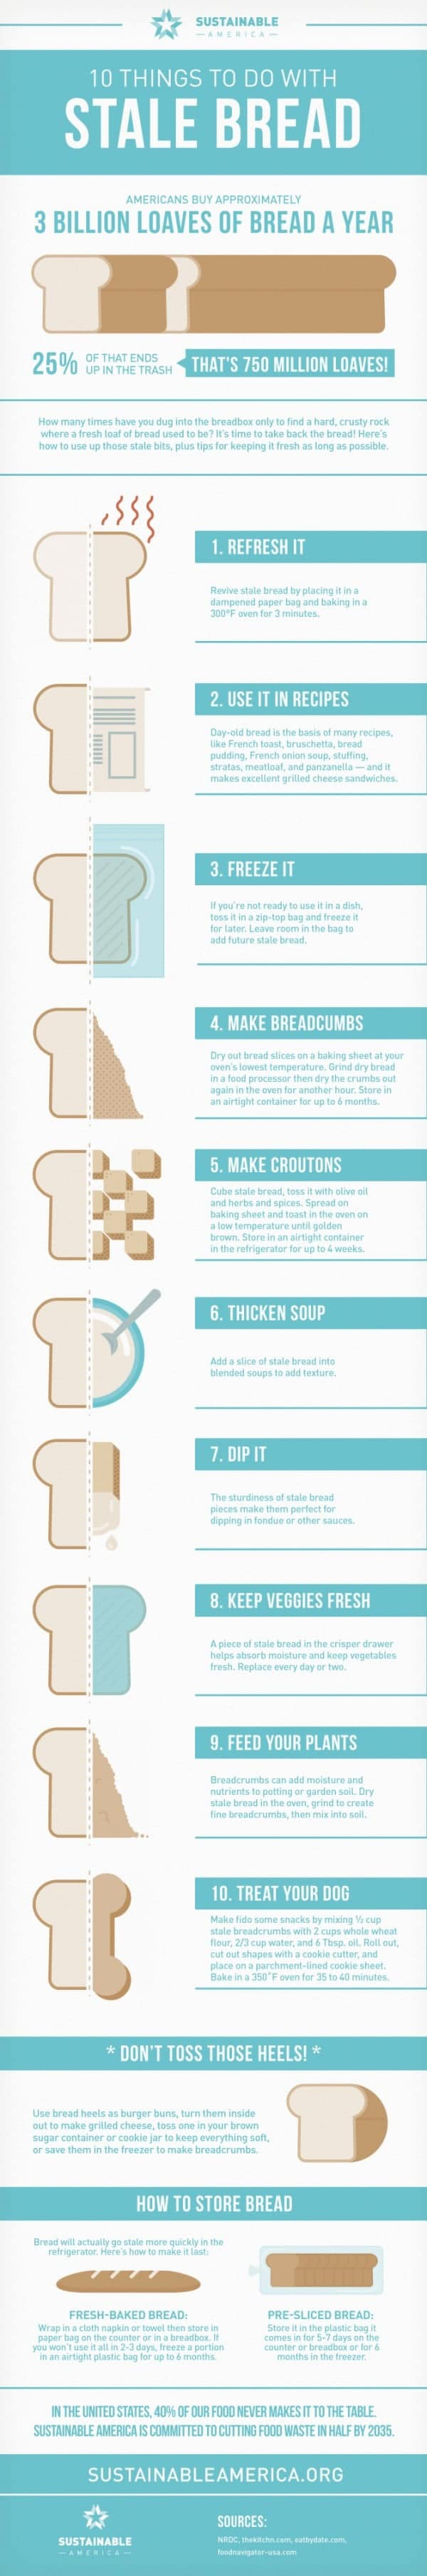 10 Things To Do With Stale Bread [infographic]